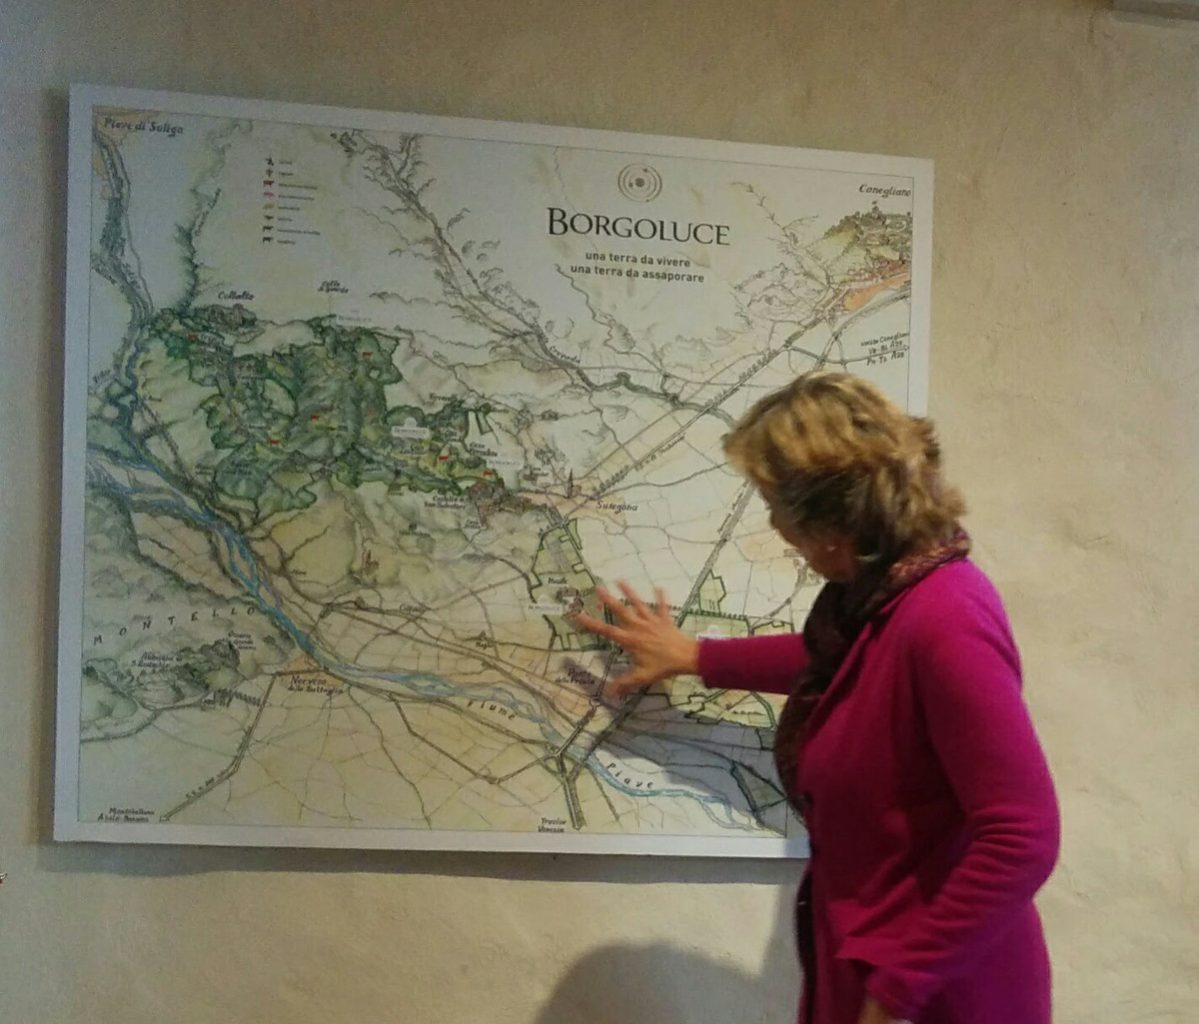 The estate of Borgoluce